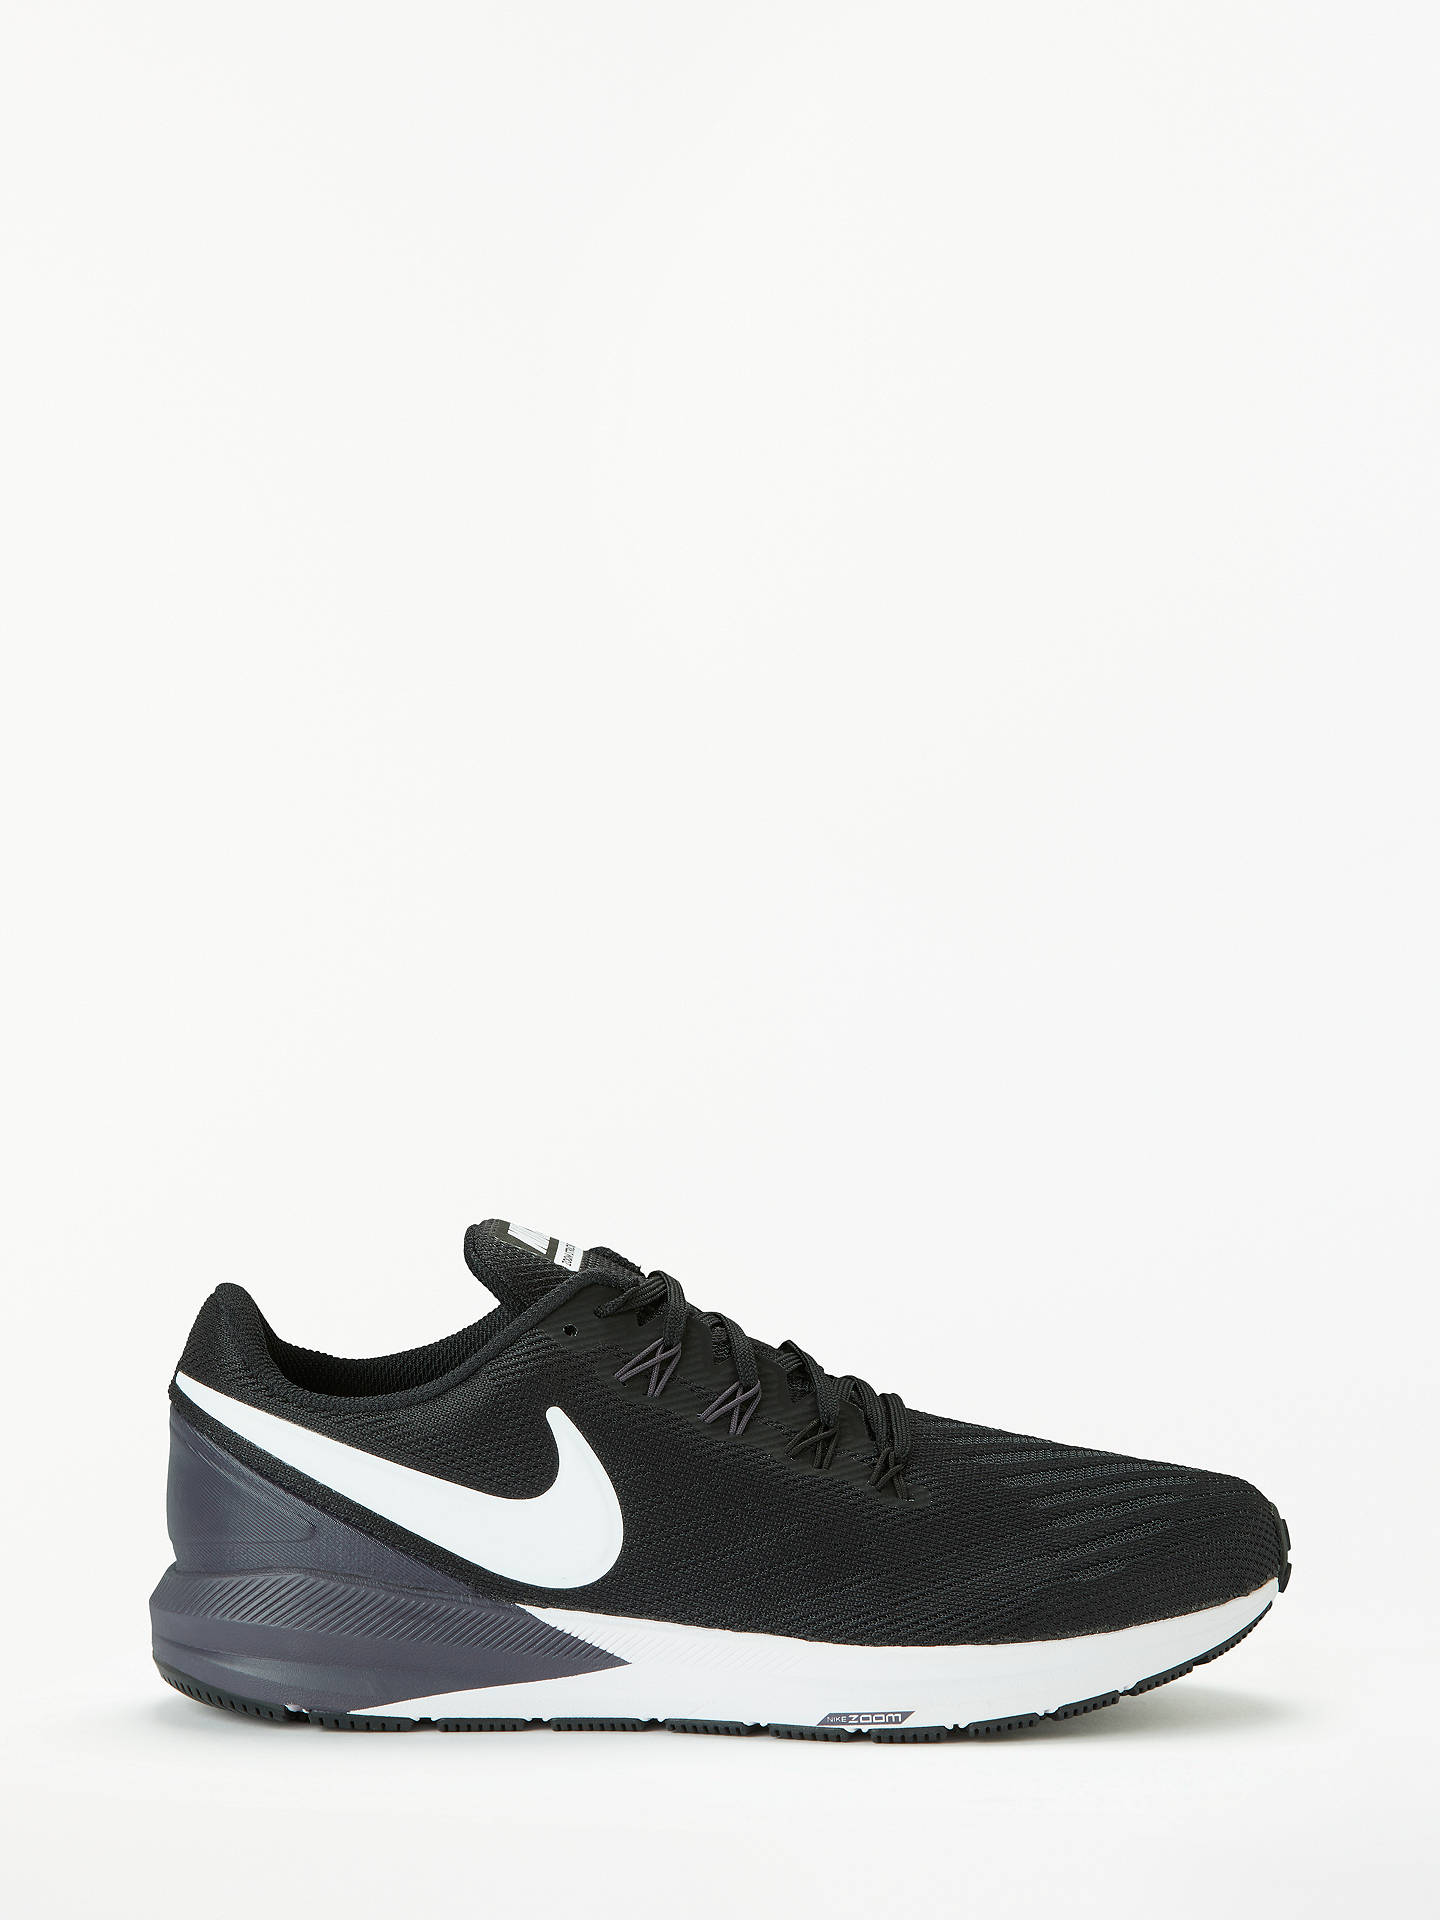 online retailer 1bf69 c4af8 ... france buynike air zoom structure 22 mens running shoes black white  gridiron 10 online c5b75 174eb